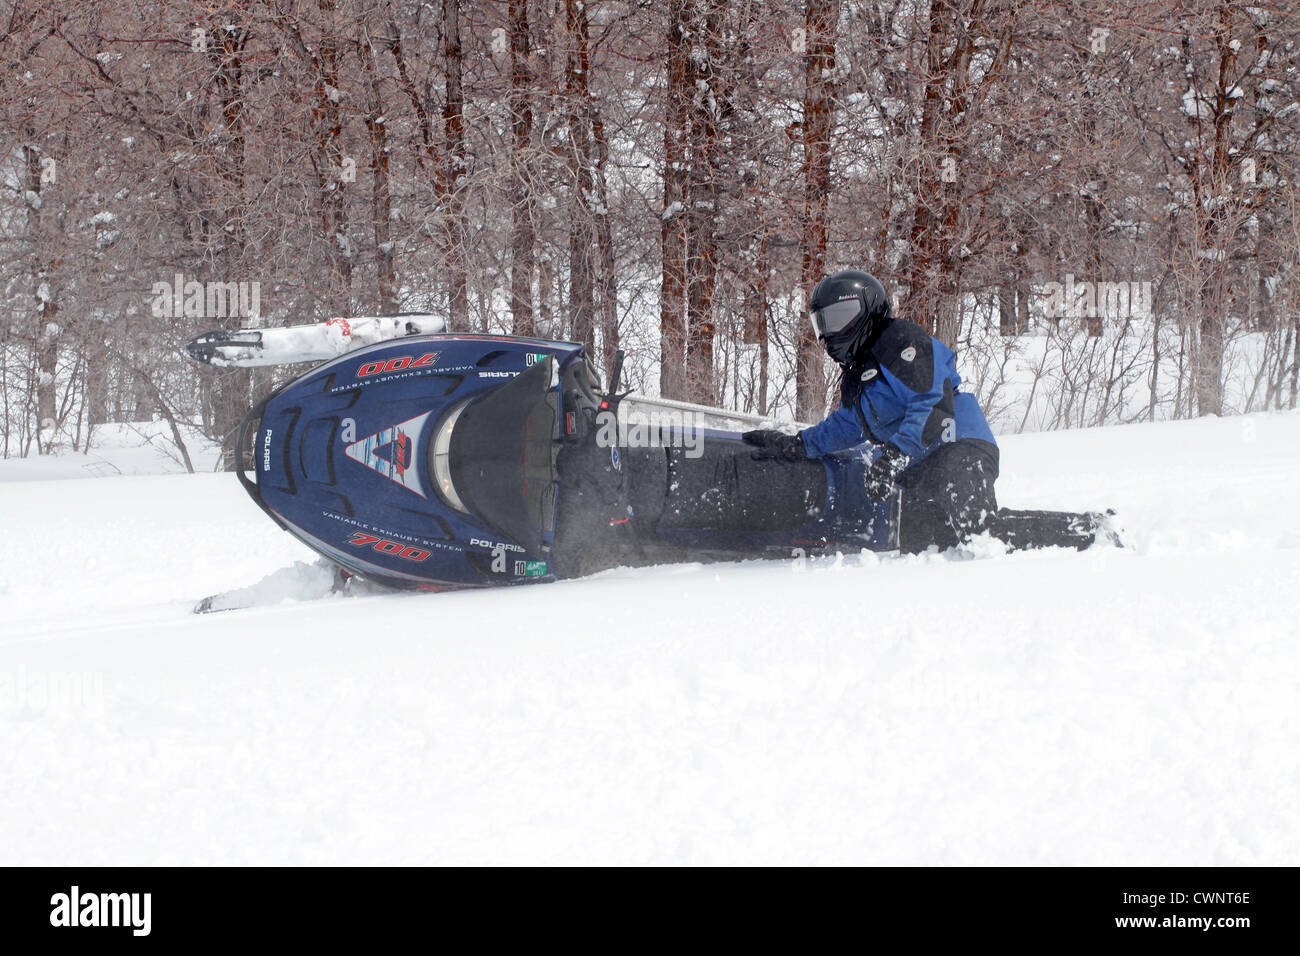 Snowmobile rider having fun and turning in fresh white snow. Sharp turns result in an overturned snowmobile. - Stock Image